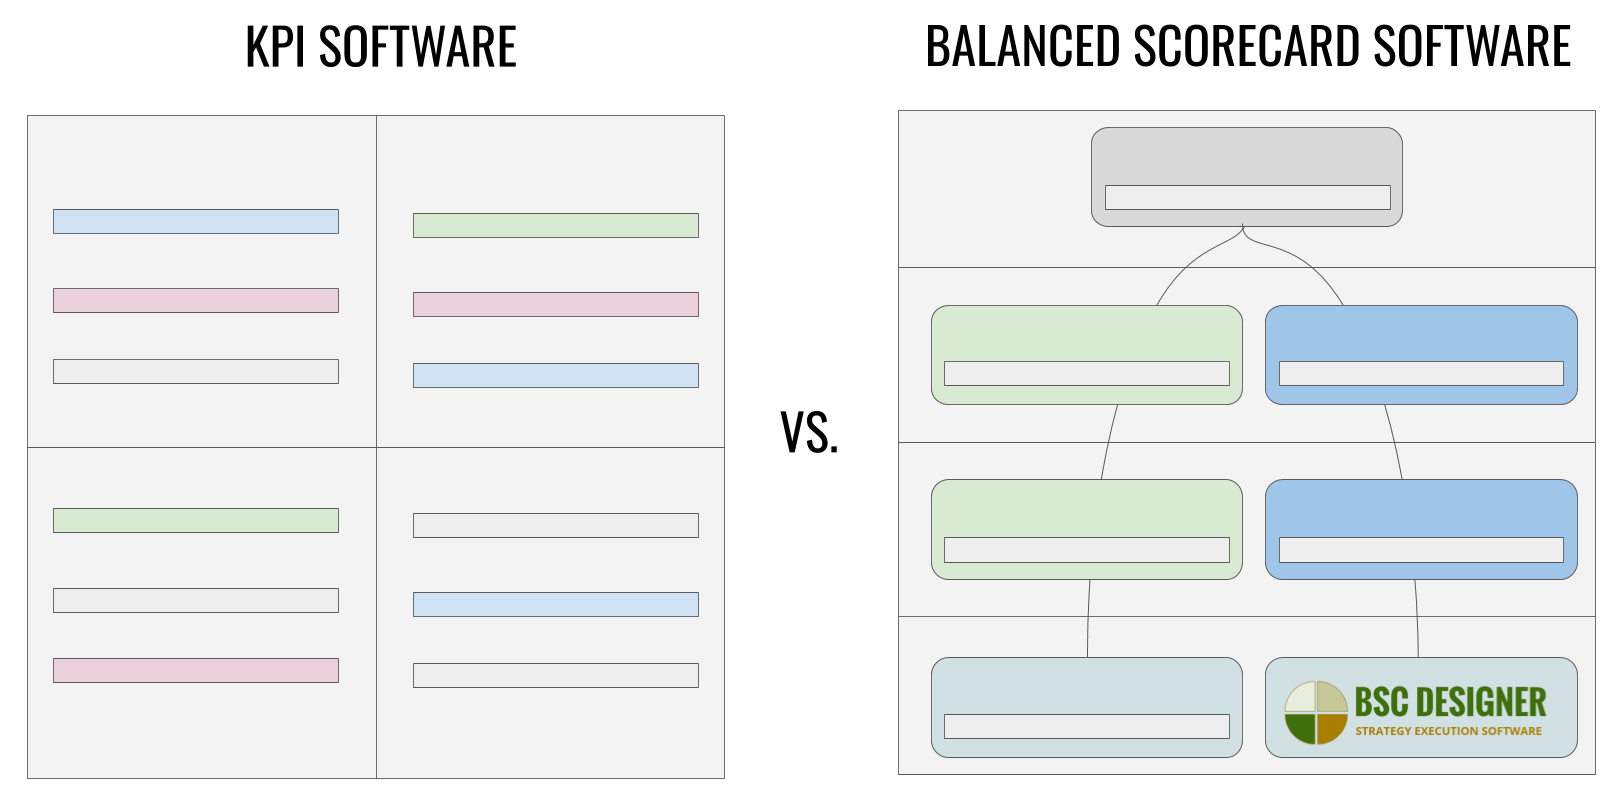 Balanced Scorecard vs KPI Software - What's the Difference?